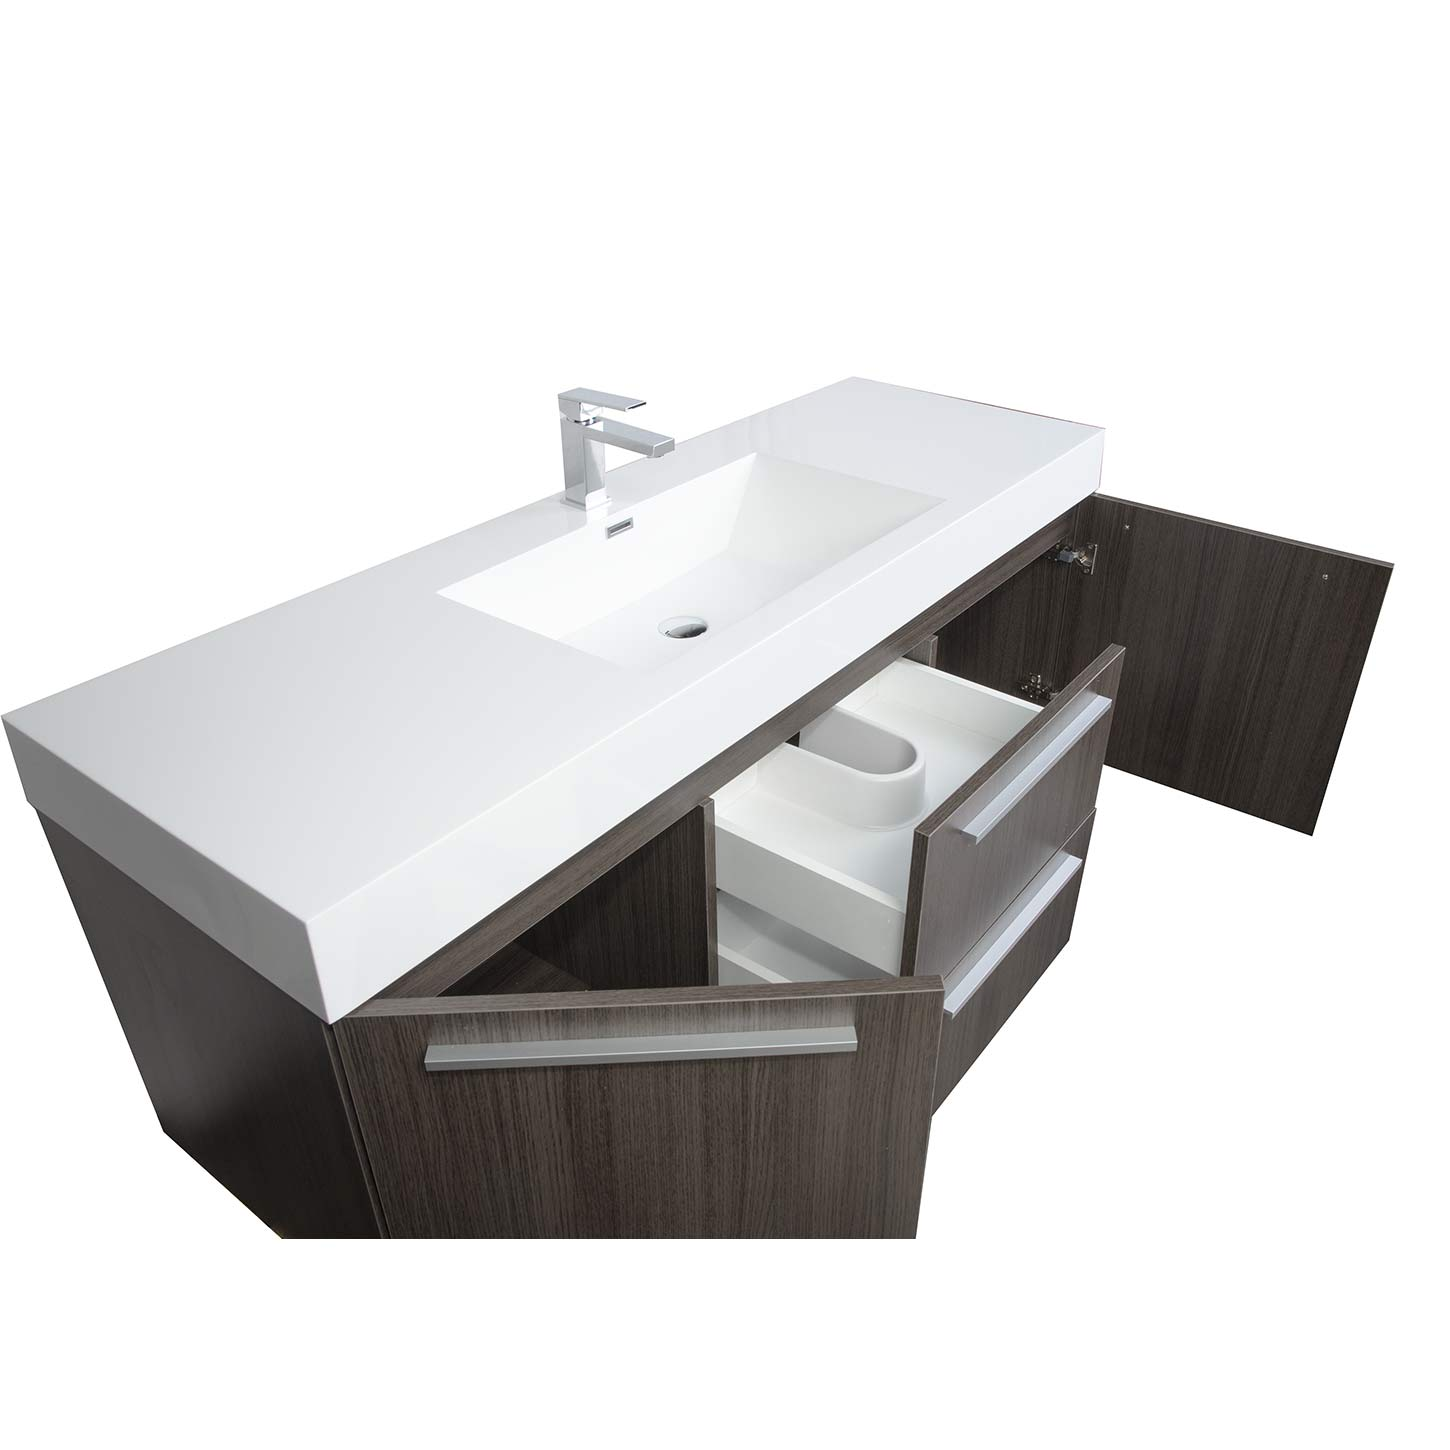 59 Inch Bathroom Vanity Part - 16: Concept Baths